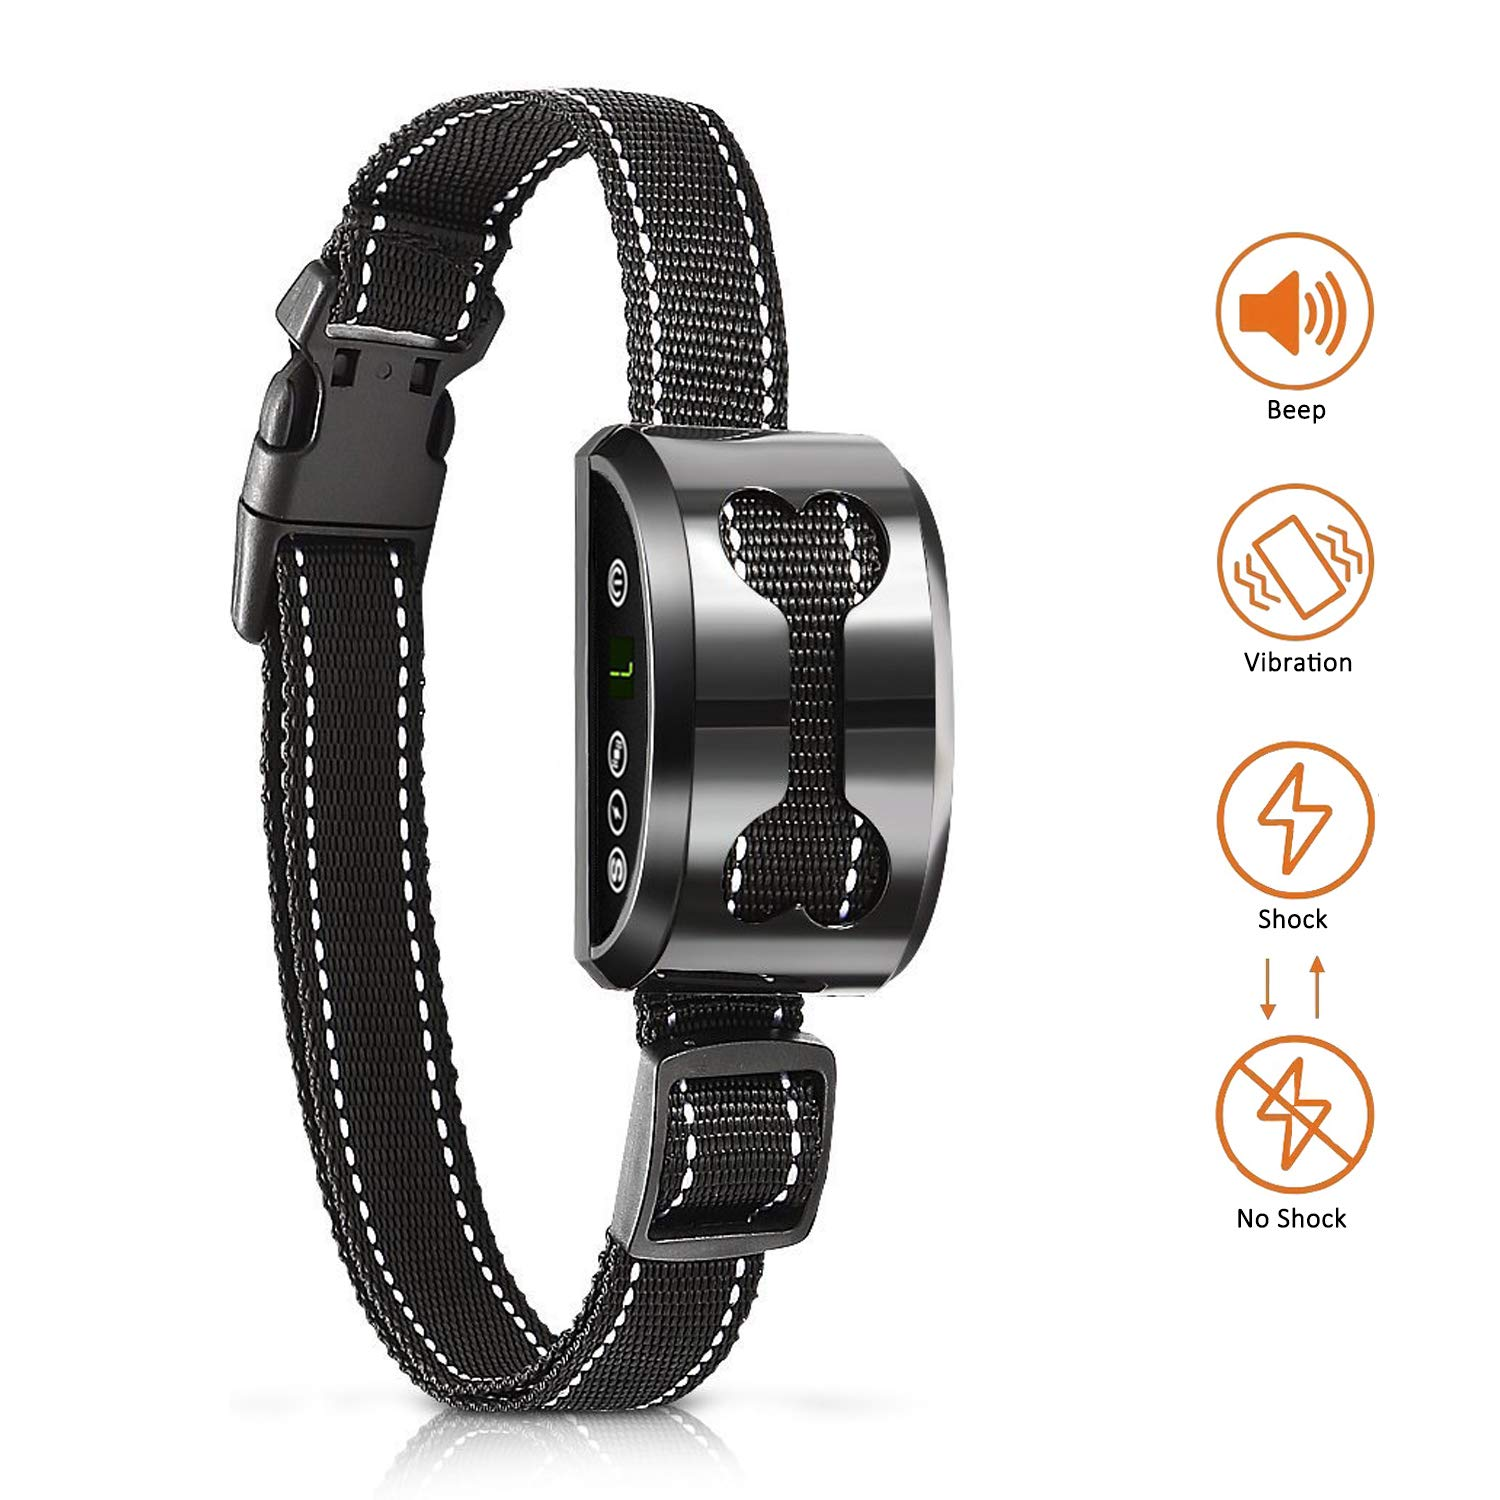 Elivern Anti Bark Collar for Small Dog with Sound,Vibration and Shock (Can be Switched Off) Functions, USB Rechargeable Bark Off Collar for Small, Medium and Large Dog